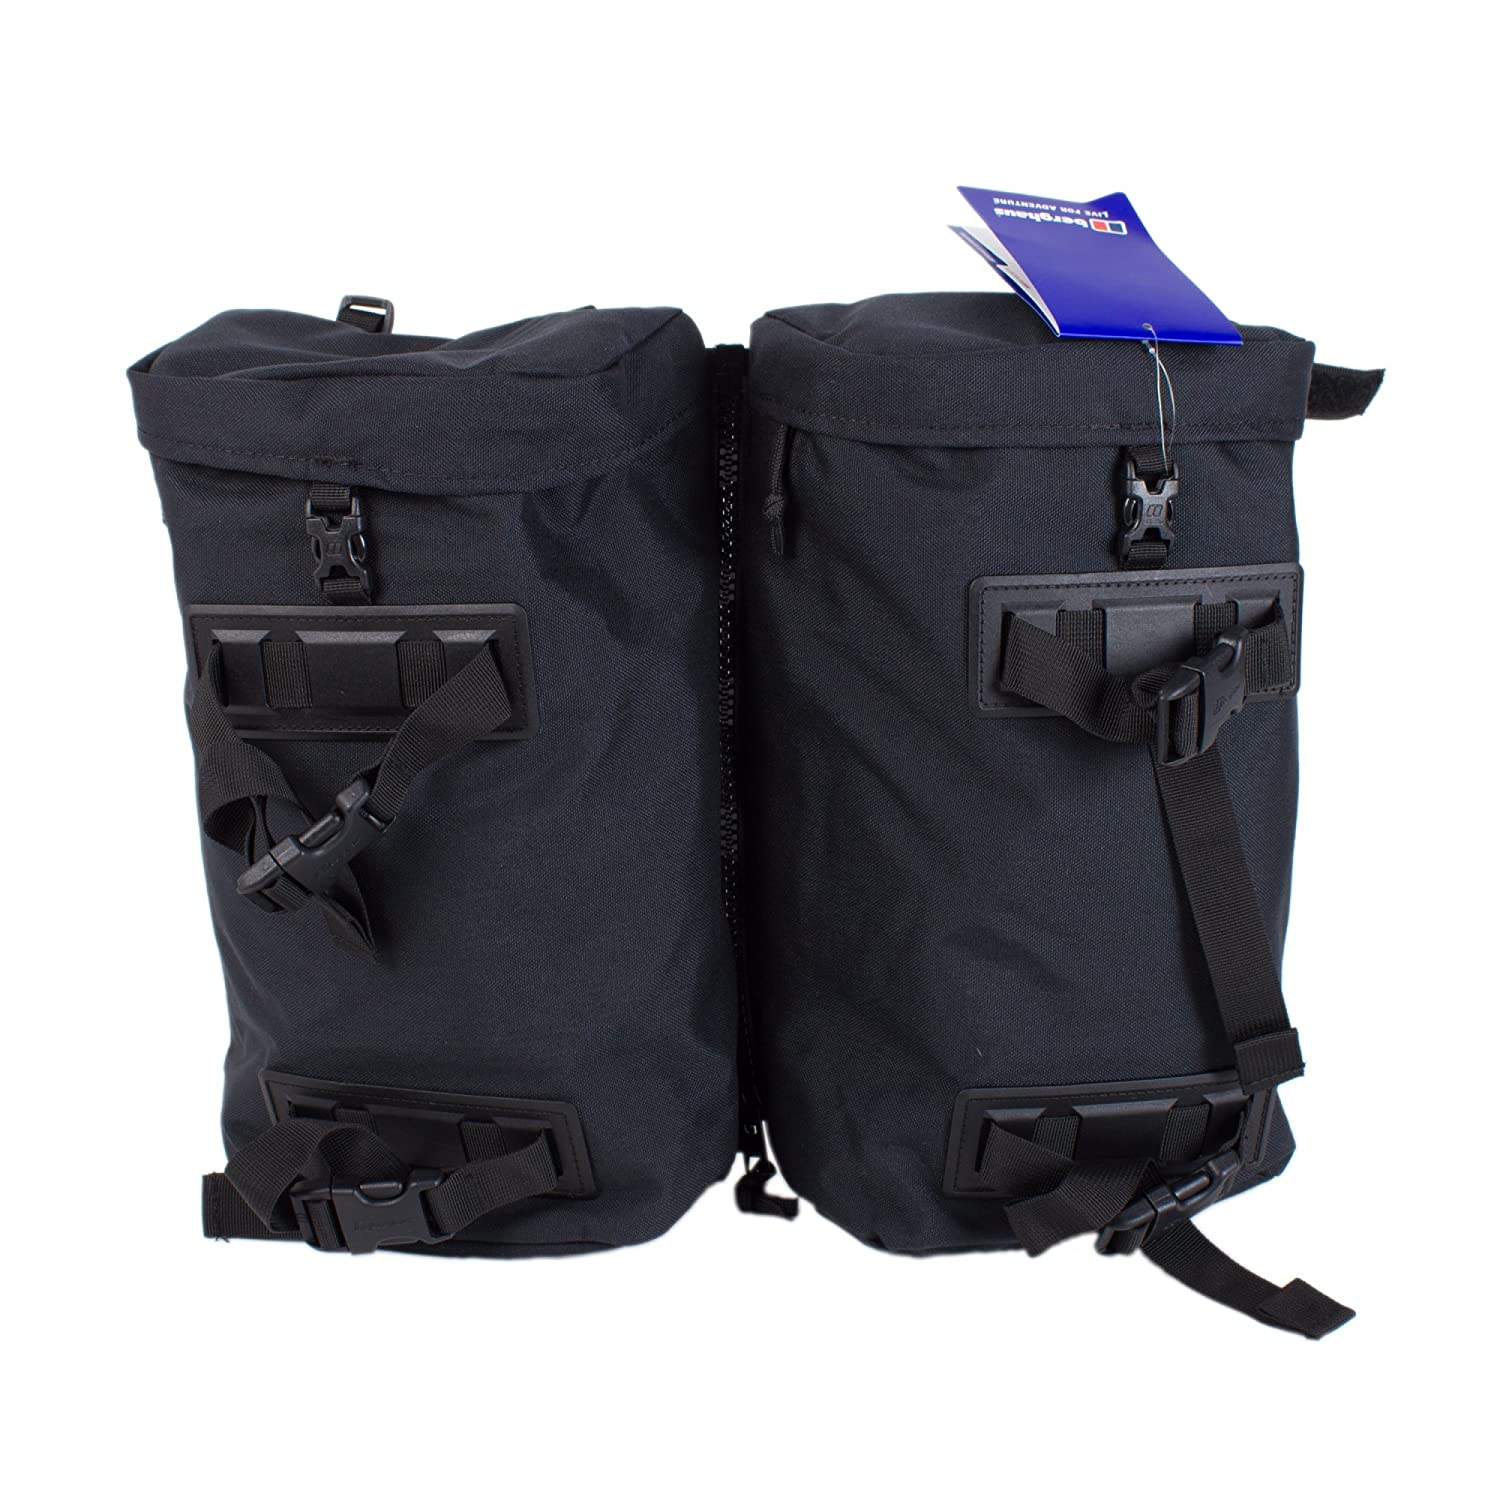 best online new arrive official site Berghaus Mmps Side Pockets Pockets II - Black: Amazon.co.uk ...